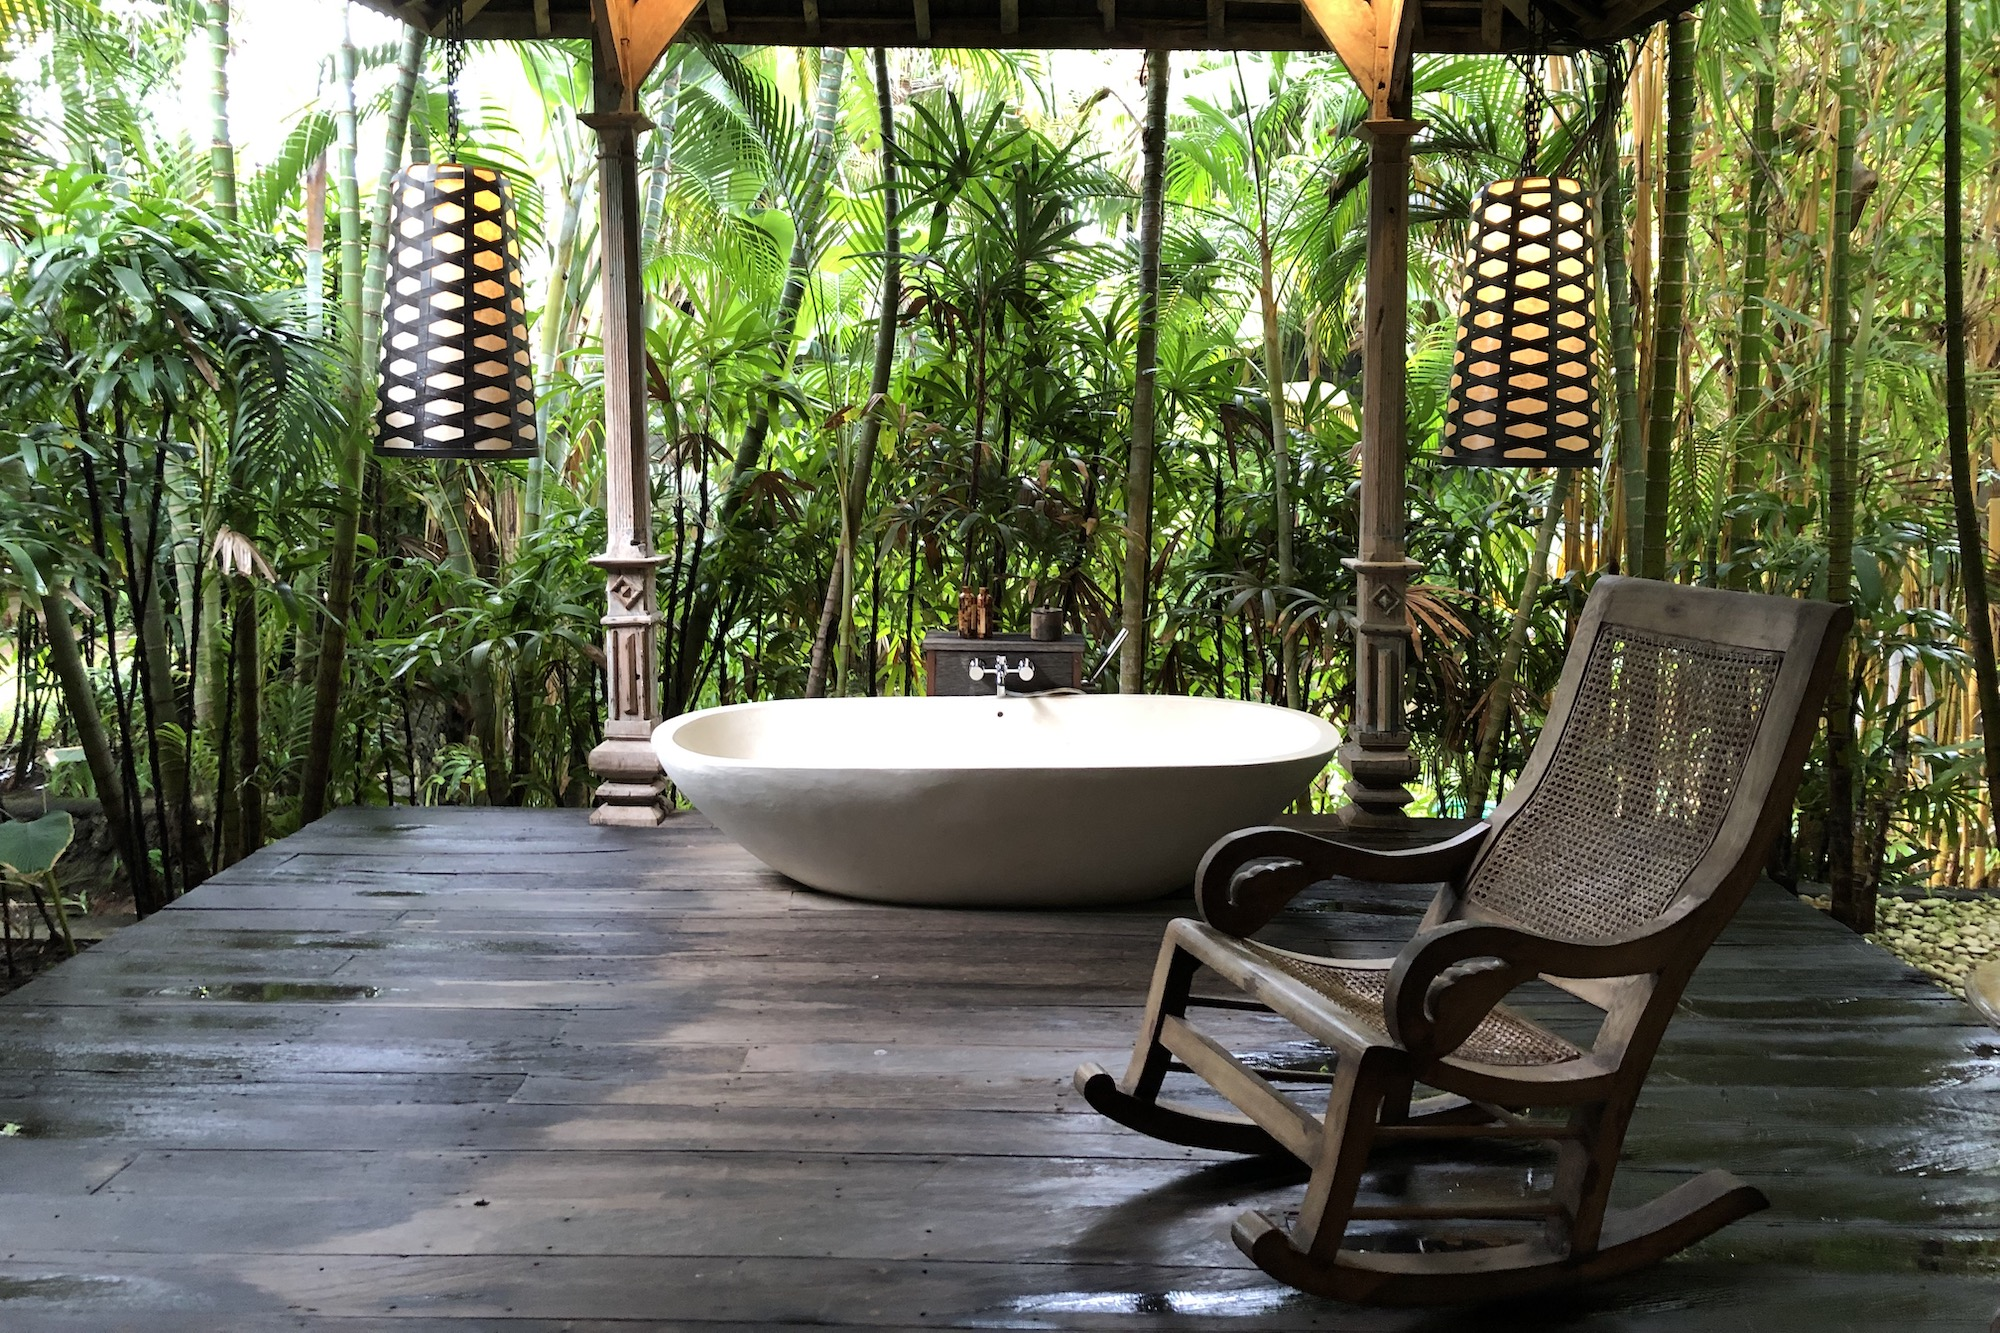 15 Jaw-Dropping Bathrooms in Bali You Must See